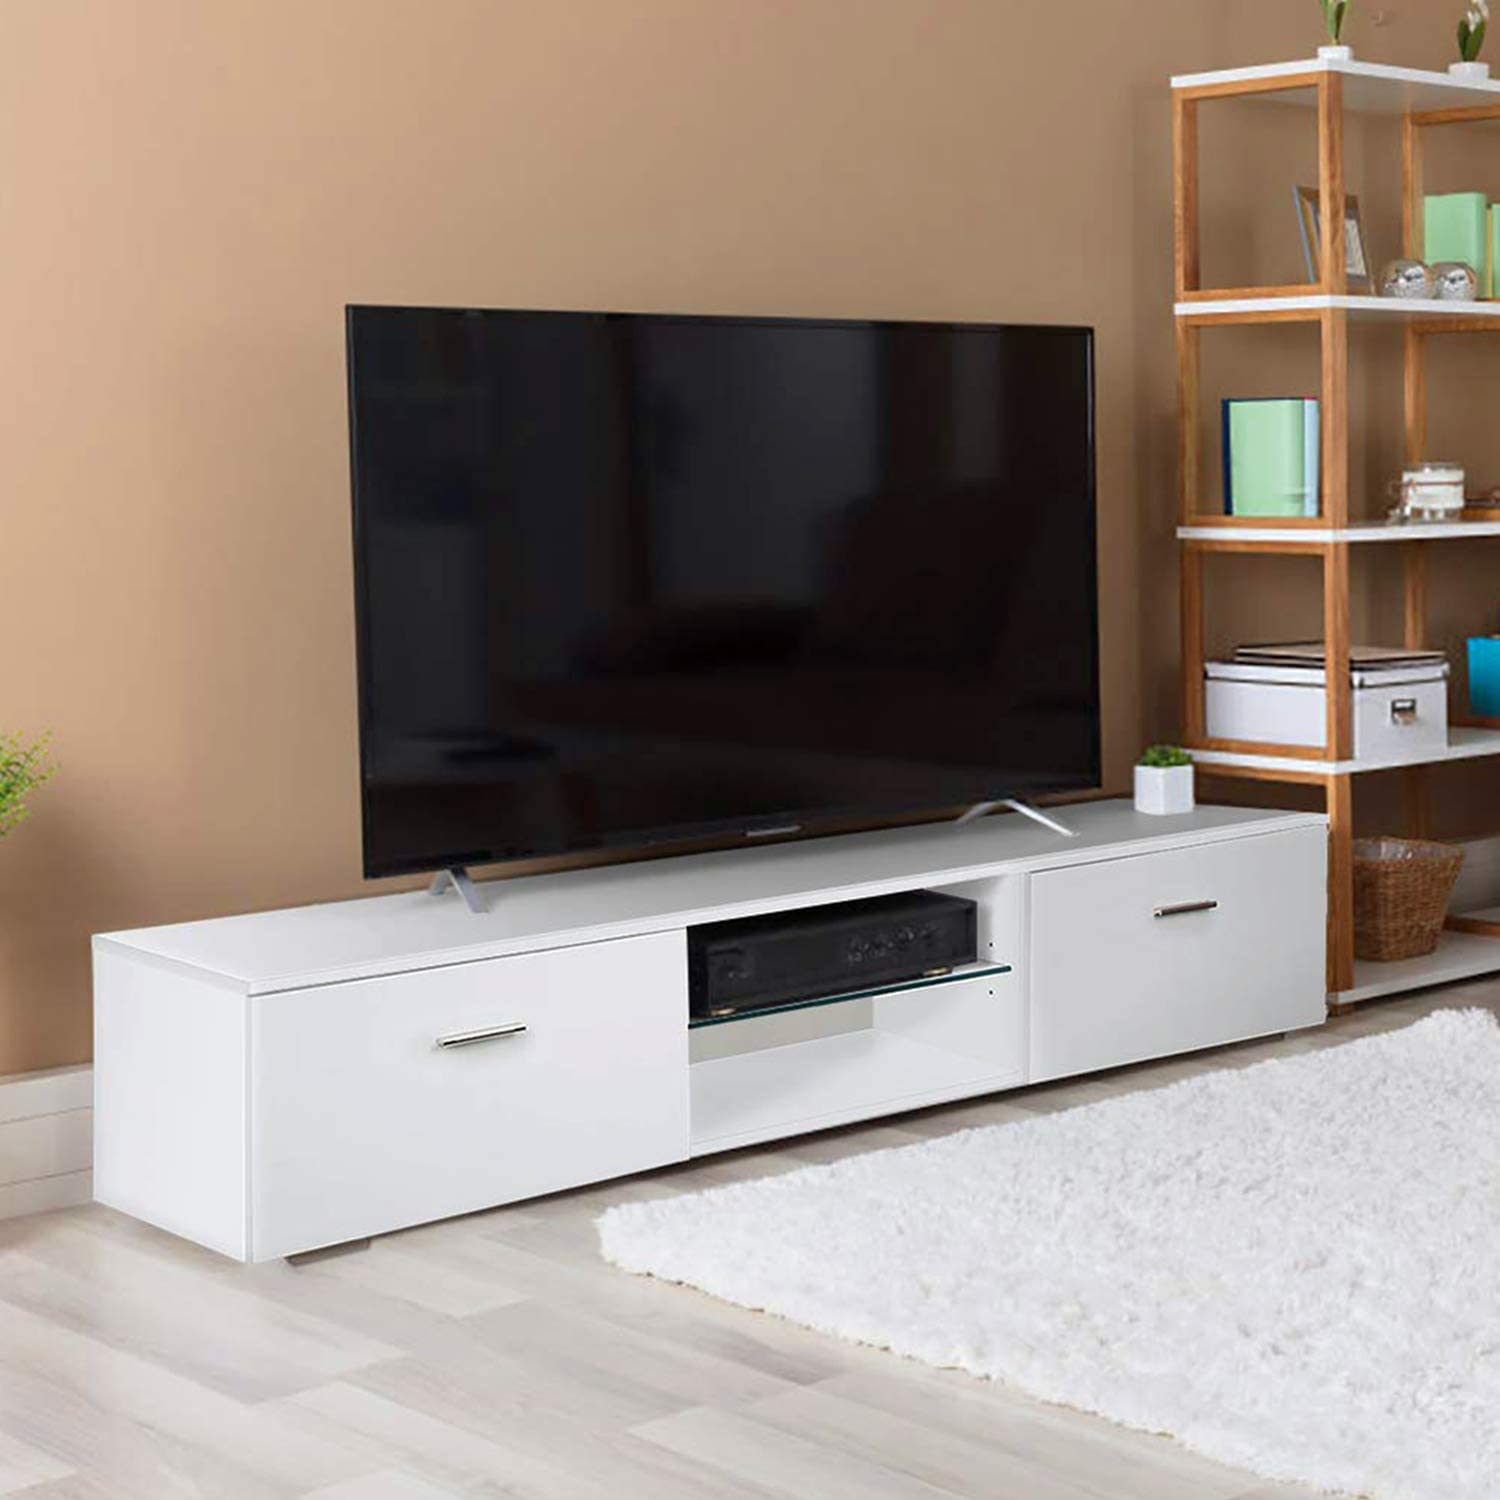 Tusy White Tv Stand For 65 Inch Tv Stands Media Console Entertainment Center Television Table 2 Storage Cabinet 2 Shelves For Living Room Bedroom Amazon Co Uk Kitchen Home